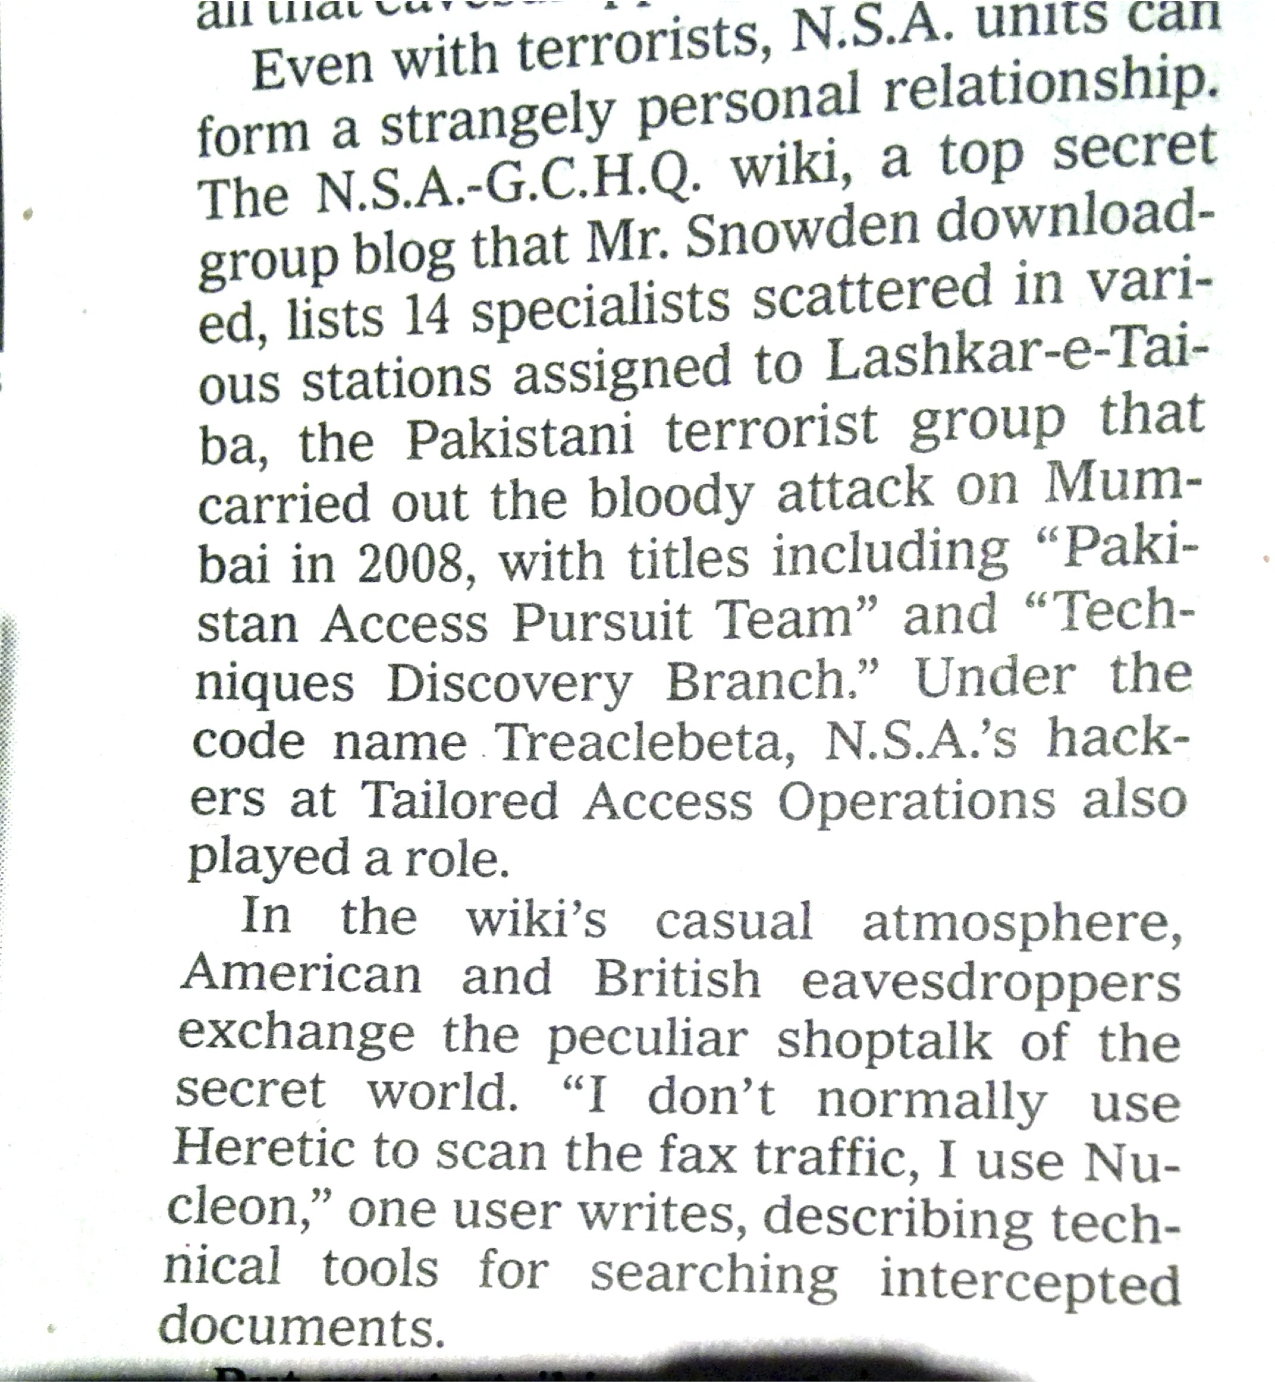 Betrayed: how the Guardian muled the names of GCHQ personnel to American bloggers and papers